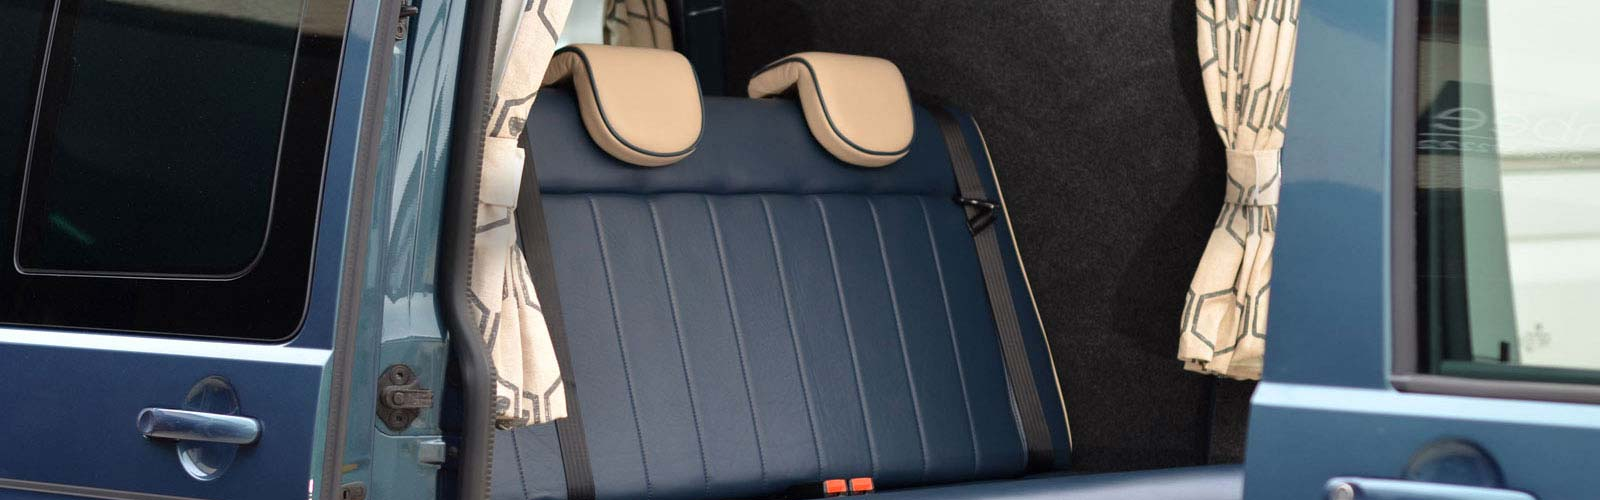 Interior of VW Transporter camper showing leather seats